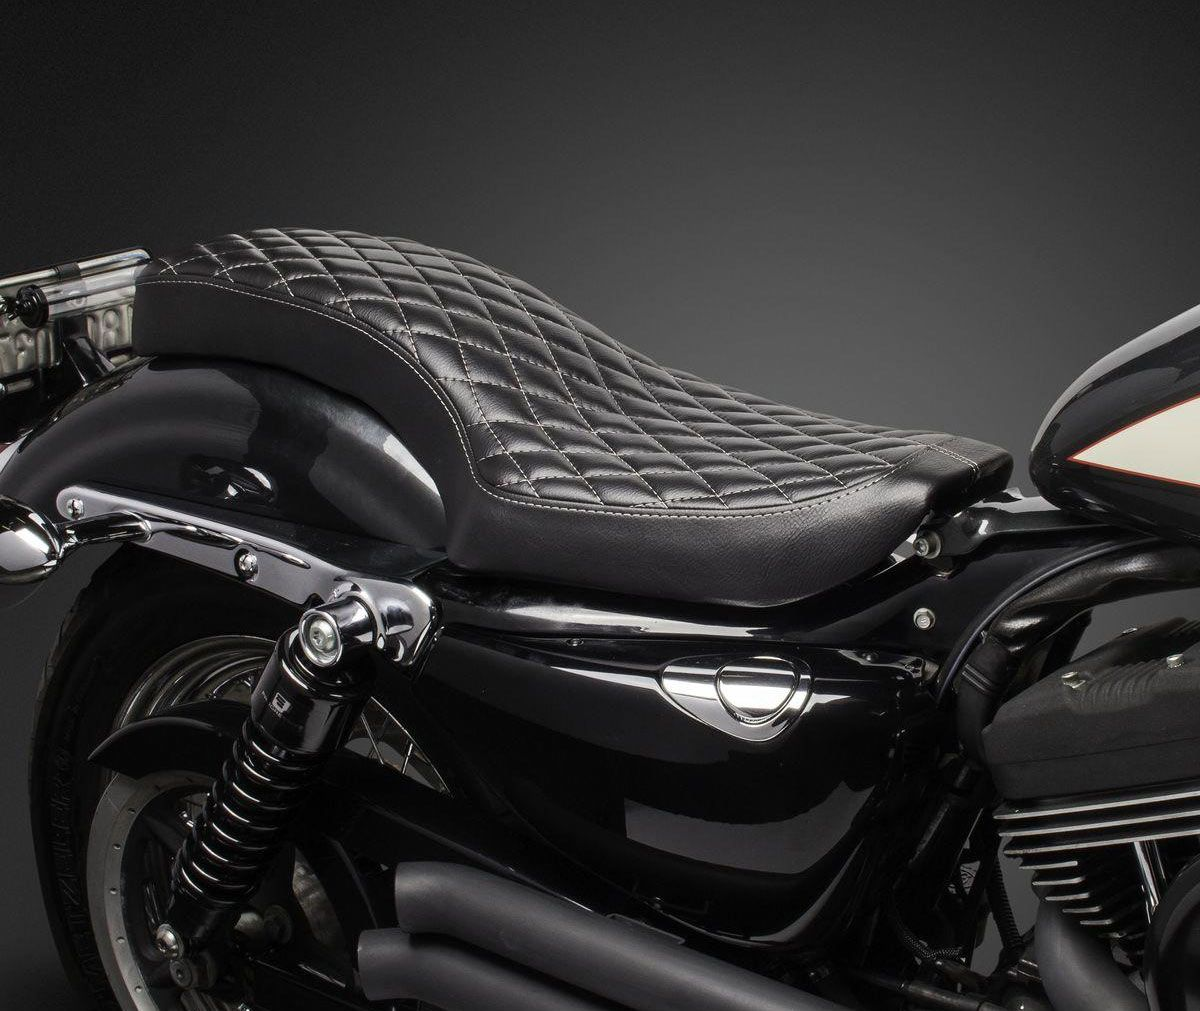 Biltwell Hb Seat Diamond Black For Sportster Xl 04 06